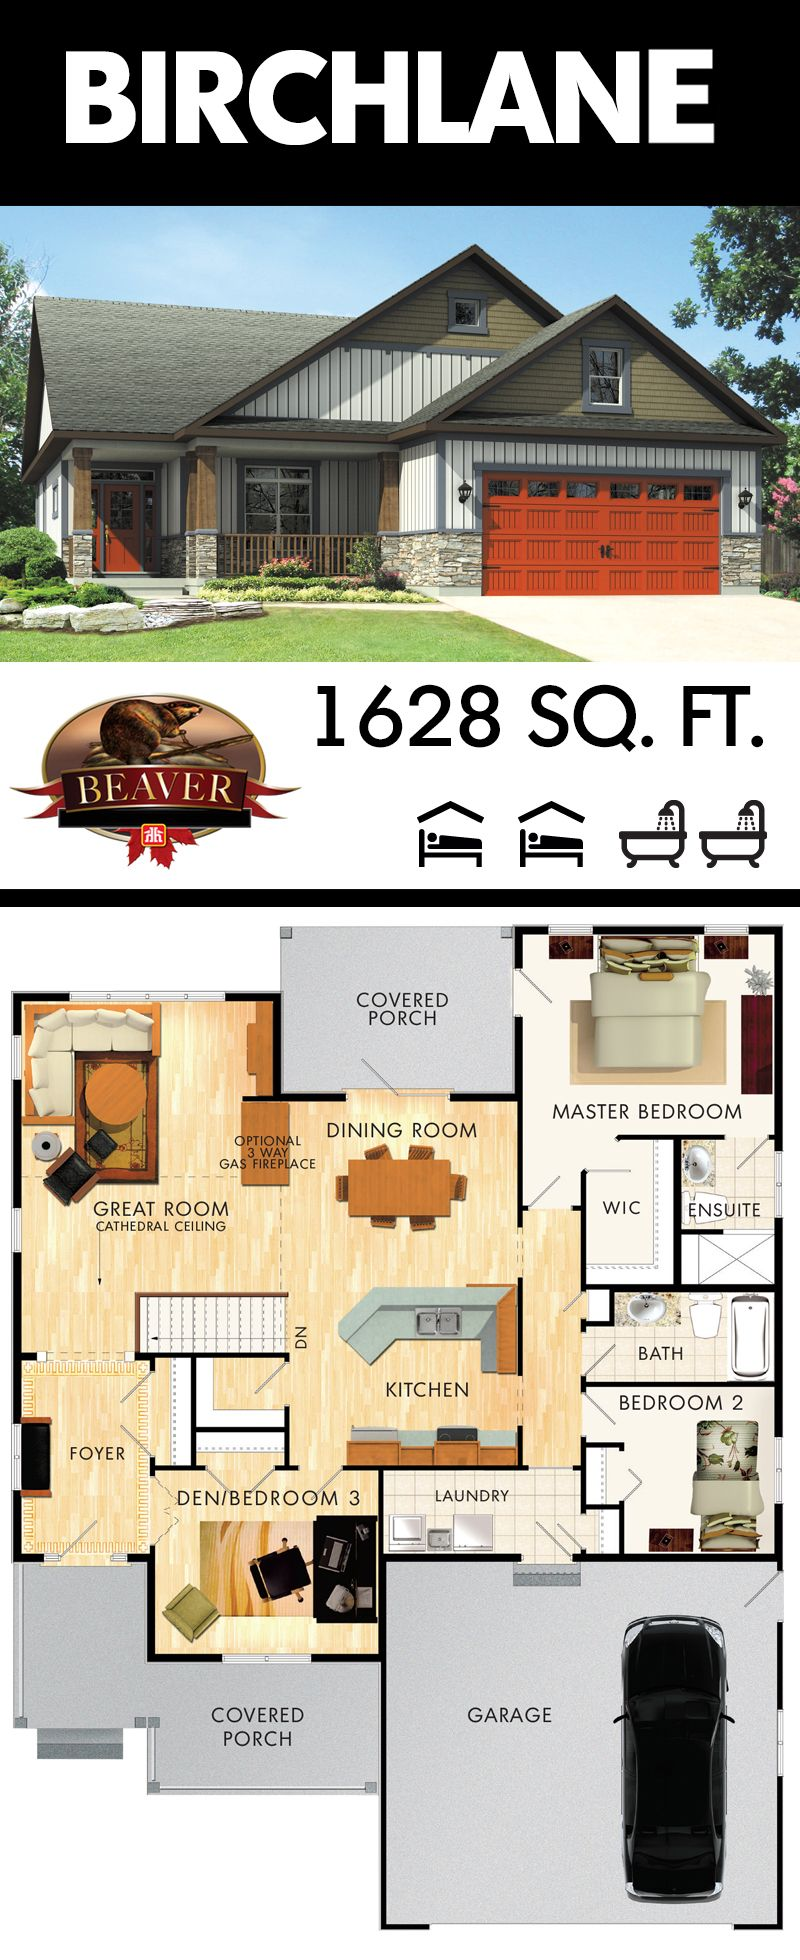 Birchlane New House Plans Beaver Homes And Cottages Dream